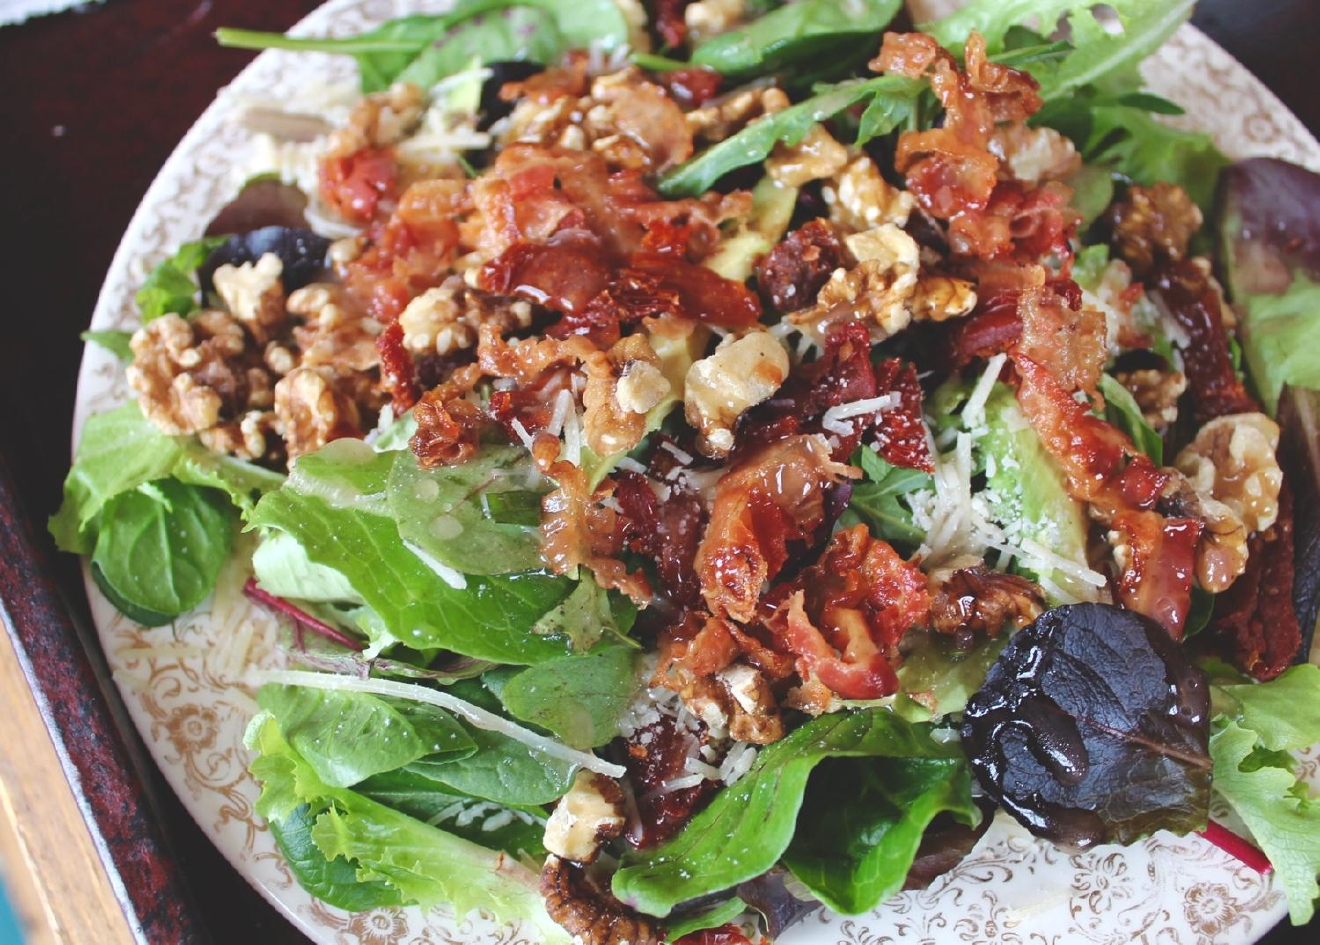 Uncle Billy: mixed greens, avocado, bacon, sun-dried tomatoes and Parmesan / Image: Rose Brewington